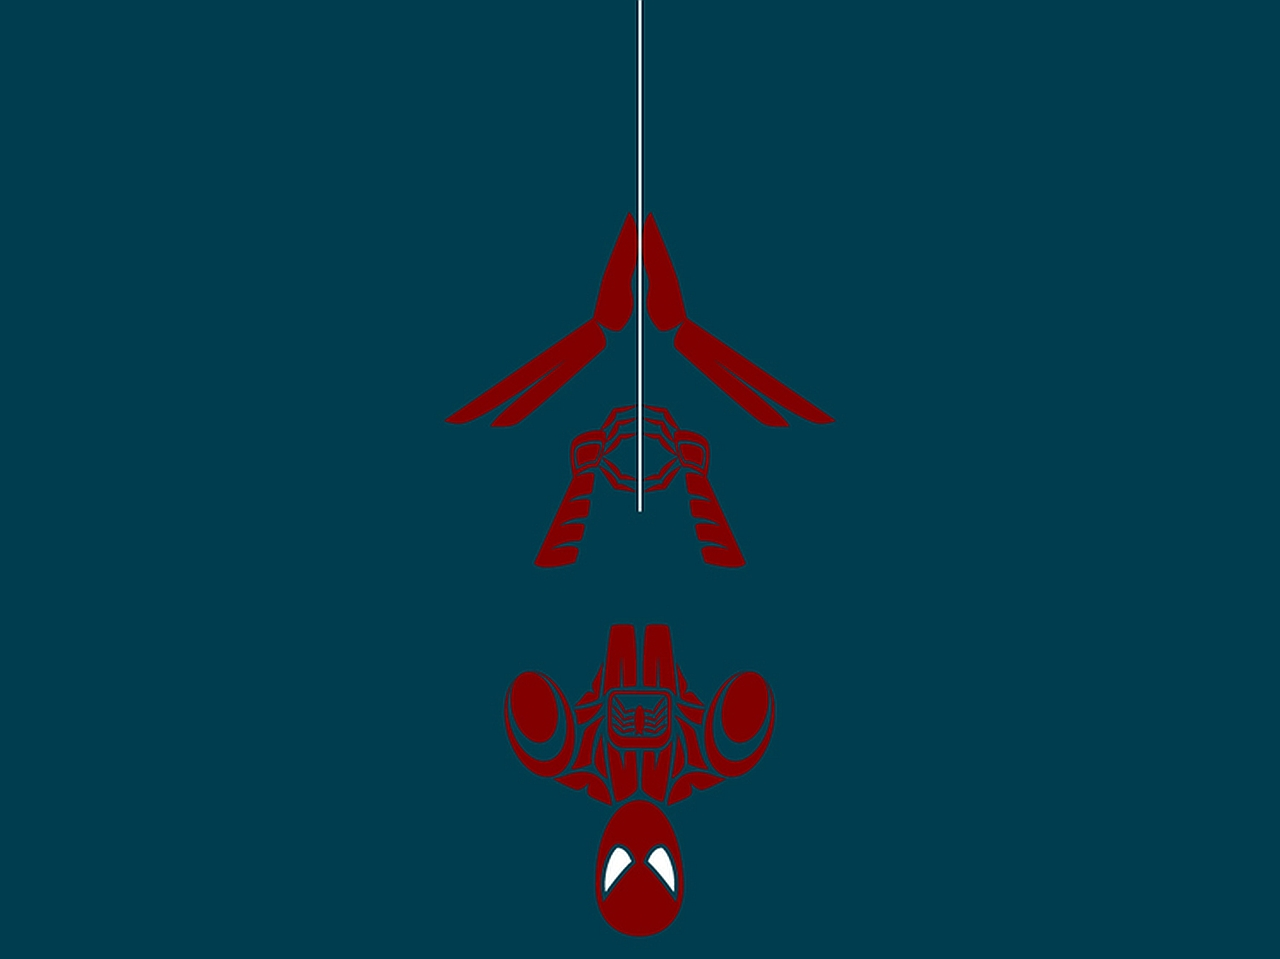 Spiderman Iphone Wallpaper Hd Wallpapers Collection